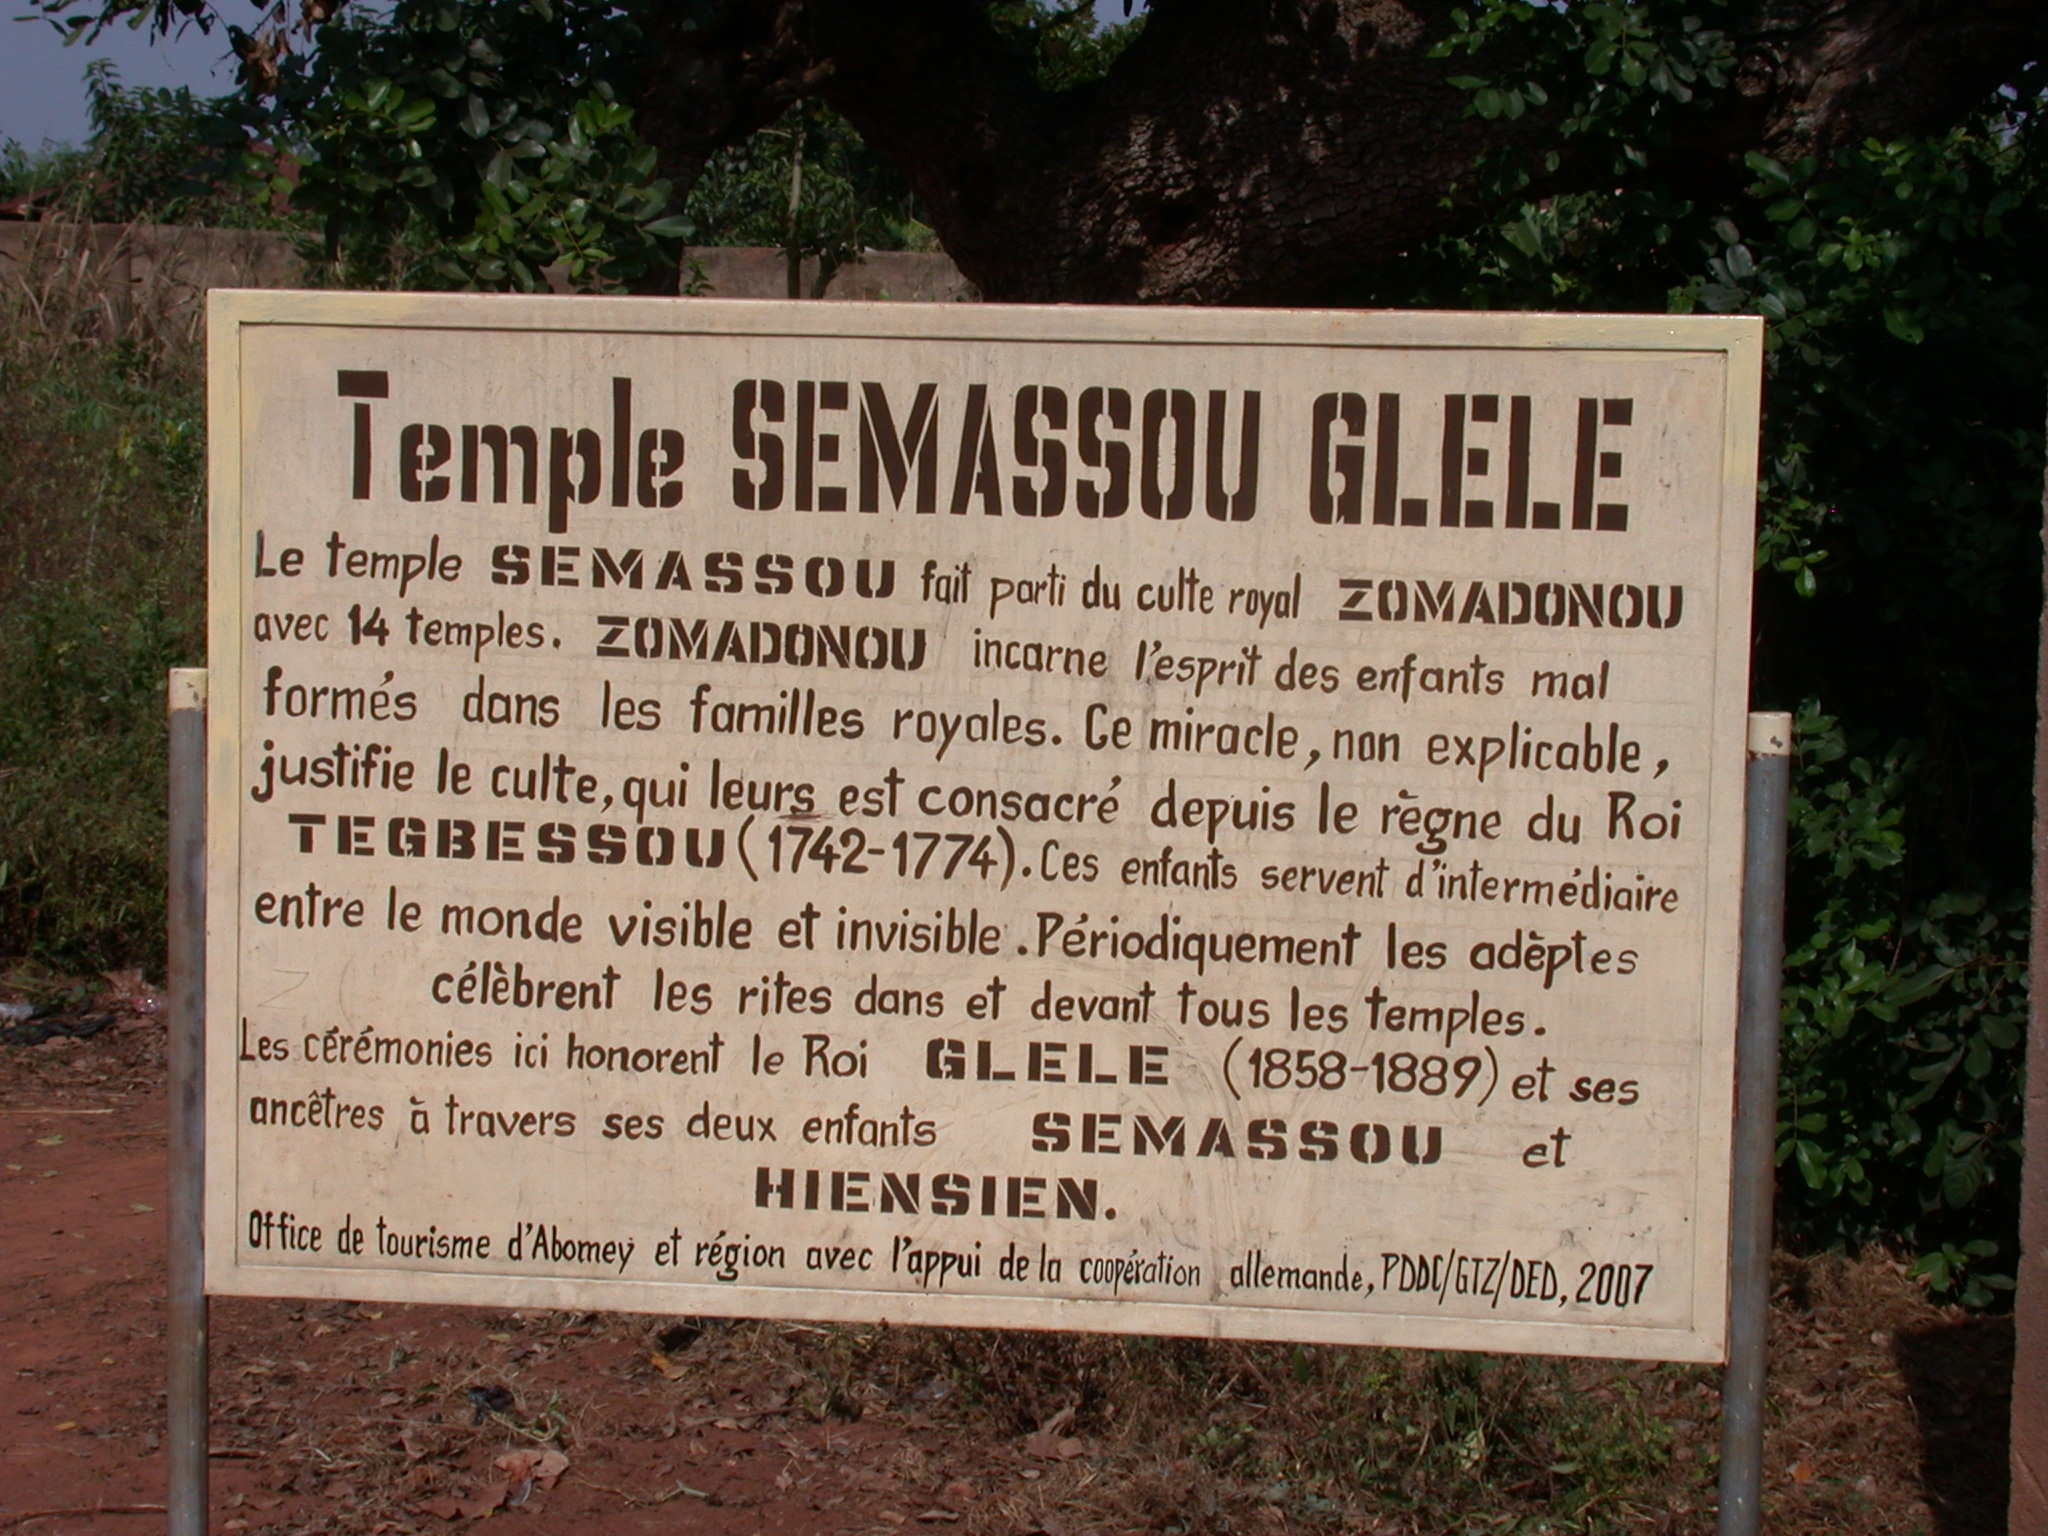 Sign for Semassou Glele Temple, Abomey, Benin